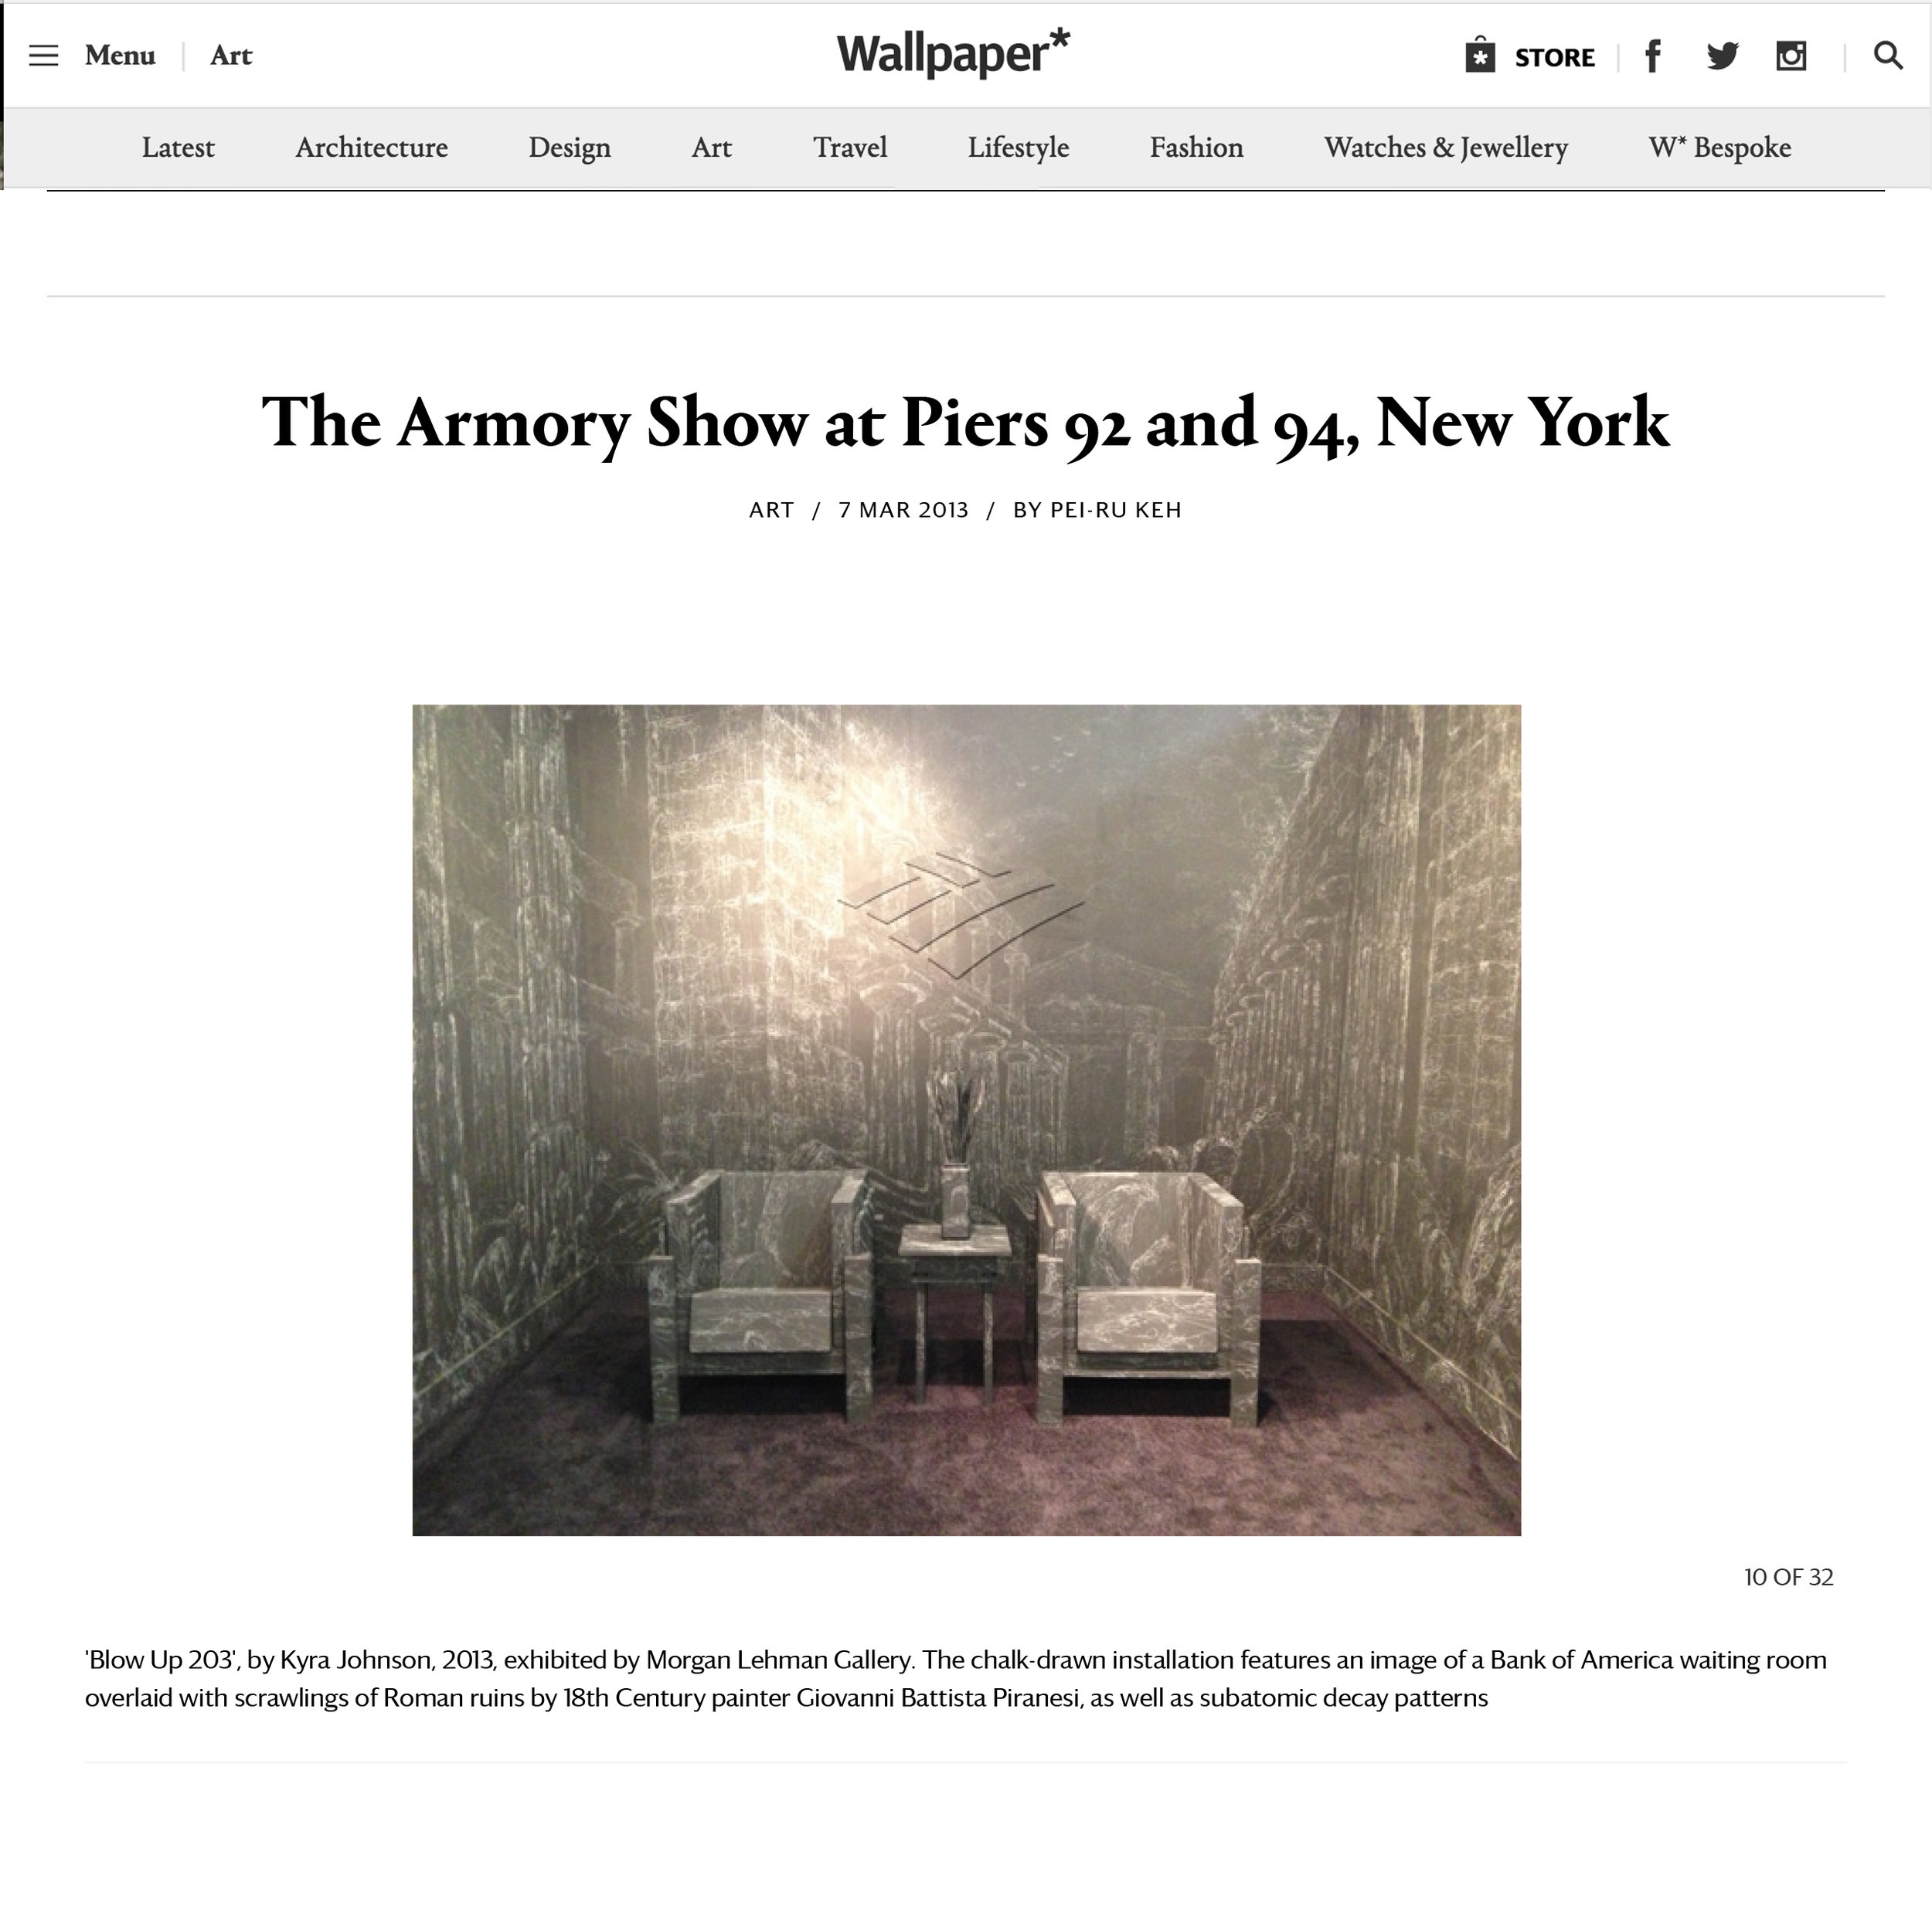 Wallpaper Magazine Best of the Armory Show